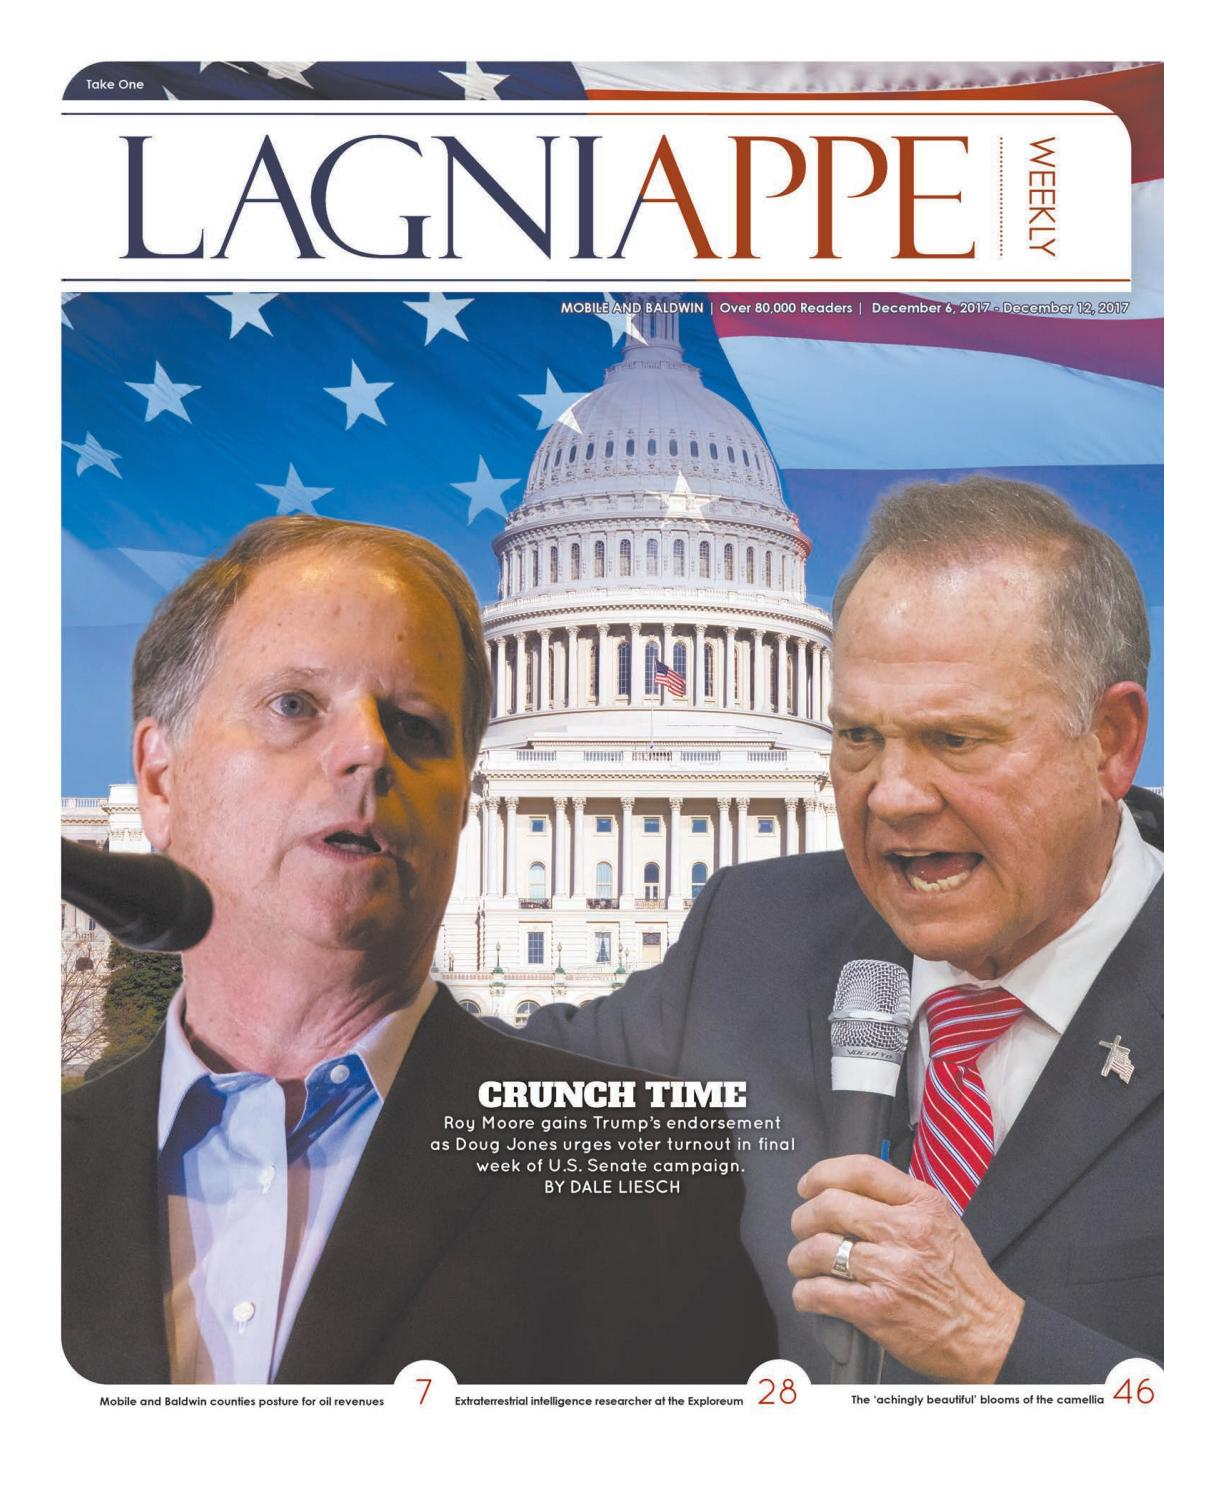 Lagniappe: December 6 - December 12, 2017 by Lagniappe - issuu